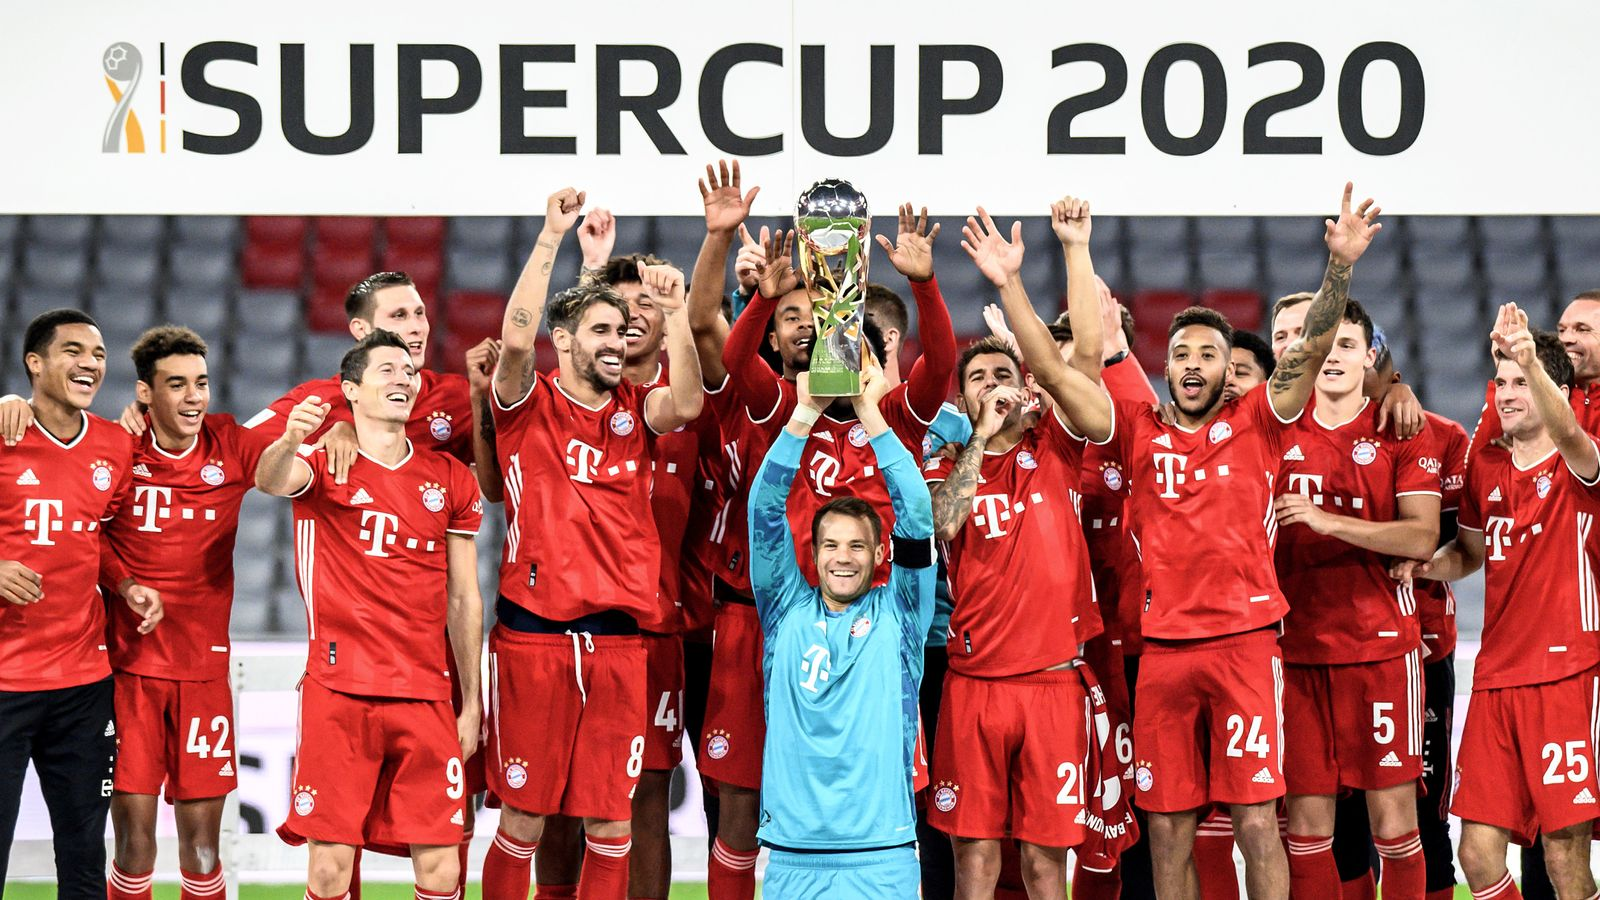 Bayern Munich Beat Borussia Dortmund To Clinch The German Super Cup While Real Madrid And Inter Milan Also Win Football News Sky Sports